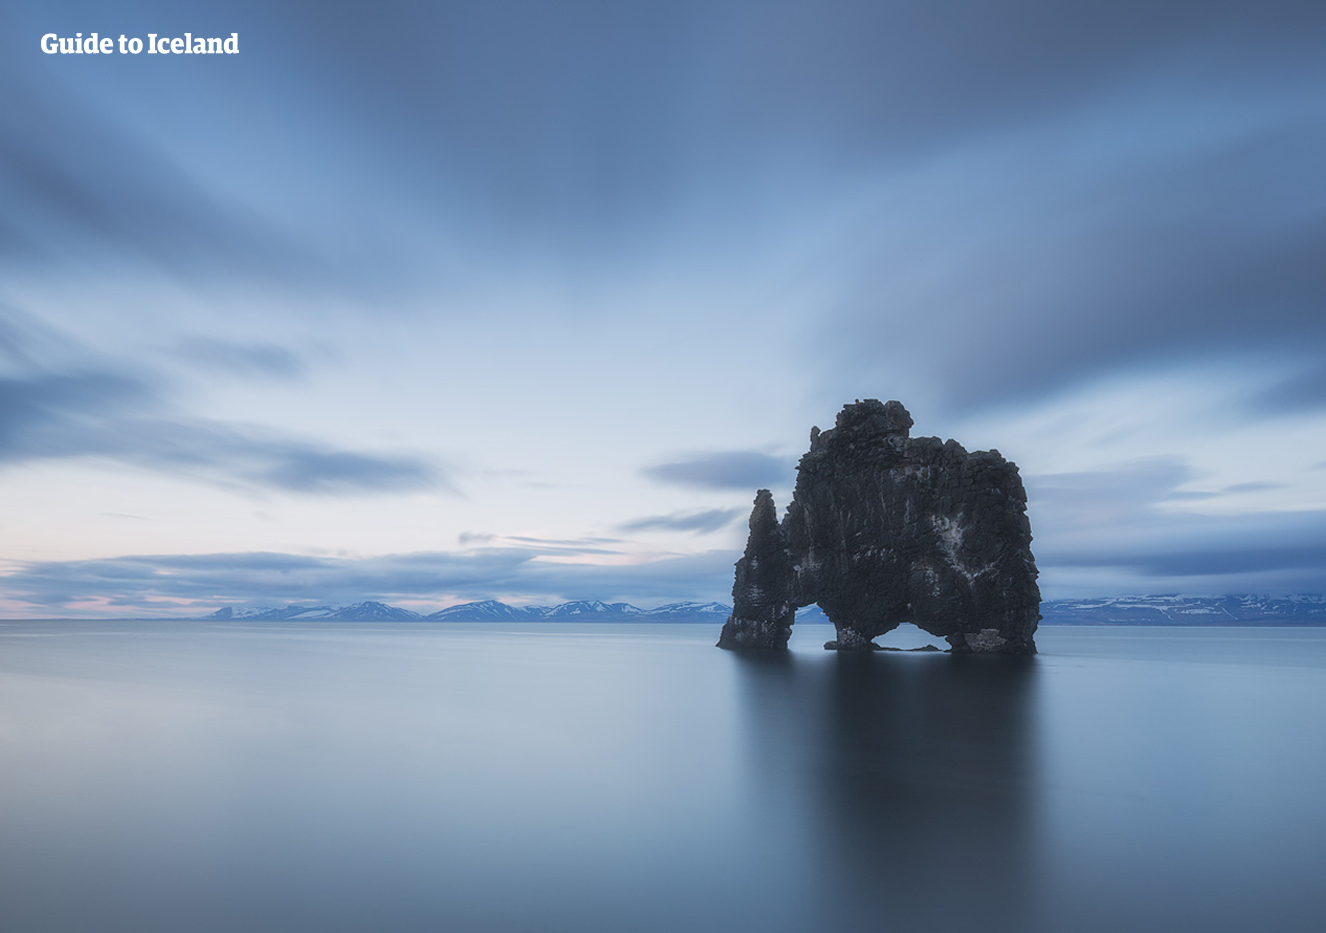 Guided 12 Day Summer Vacation Package of the Complete Ring Road of Iceland & Snaefellsnes Peninsula - day 8